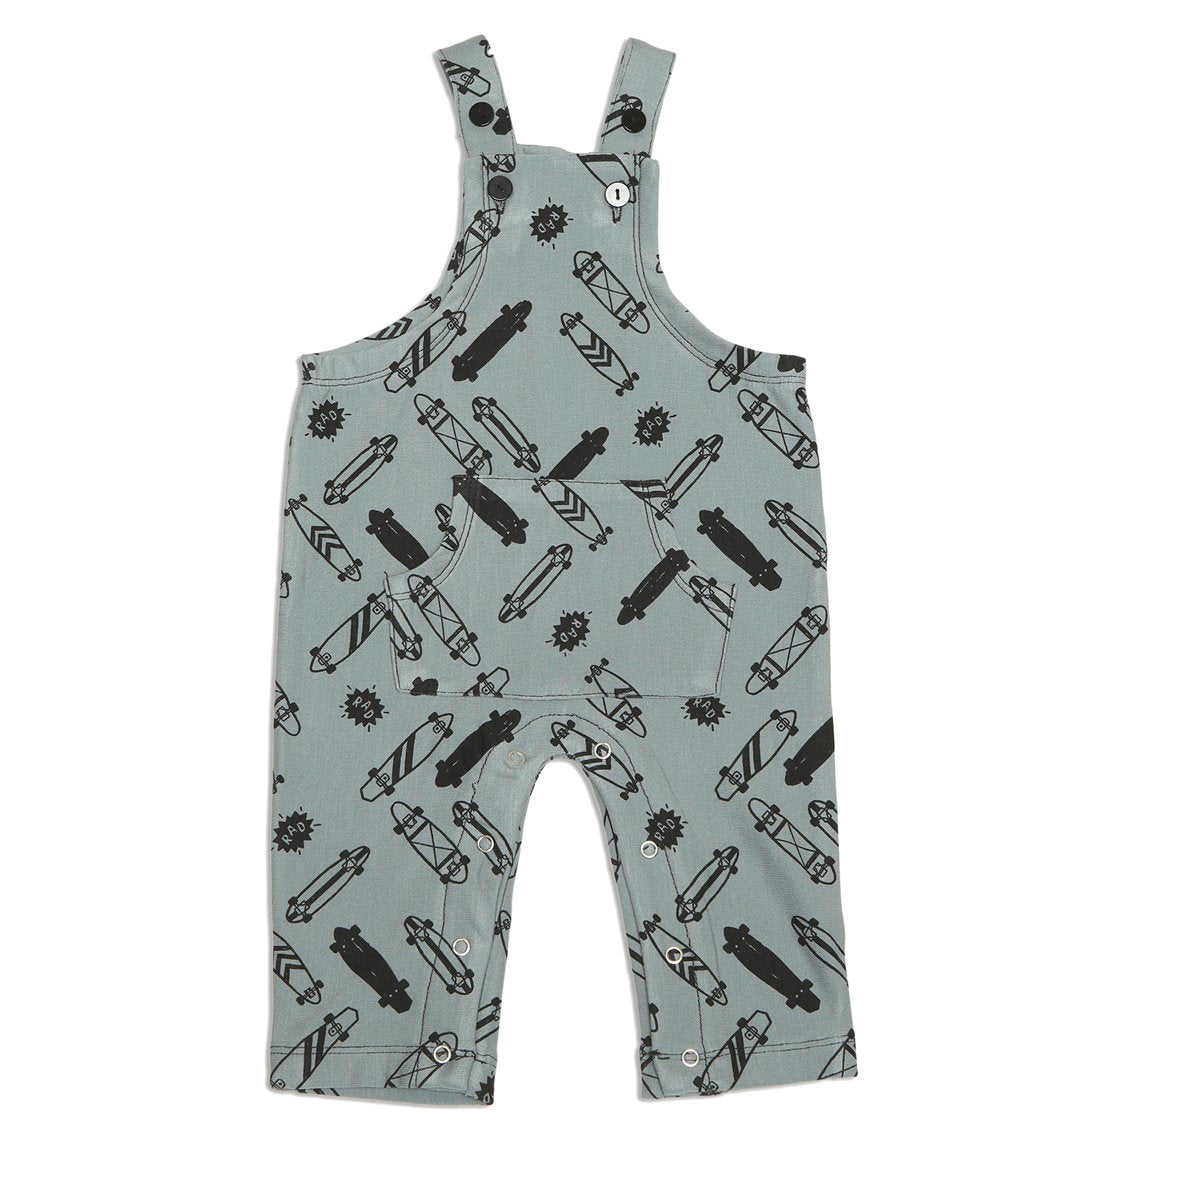 super soft bamboo fleece baby overall